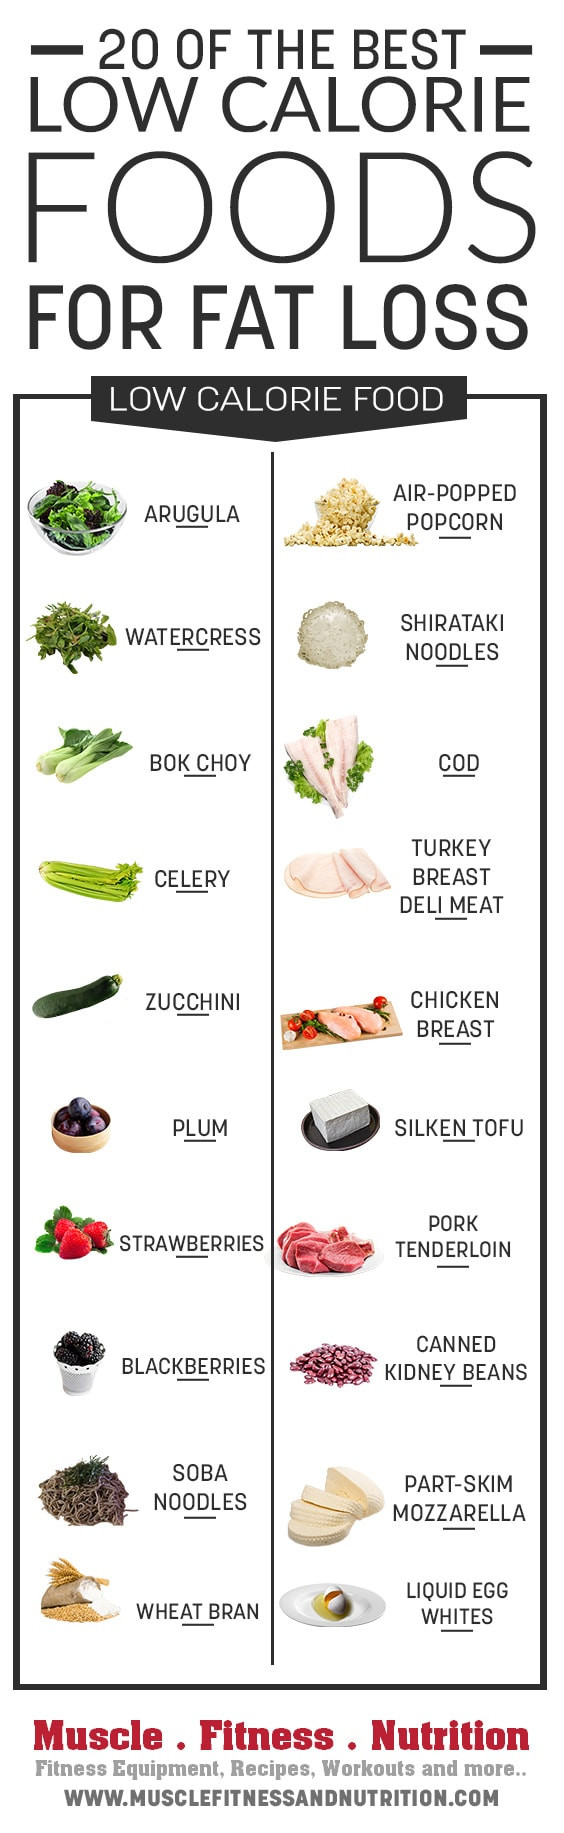 Low Fat Diet Plan Food Lists  20 of the Best Low Calories Foods for Fat Loss